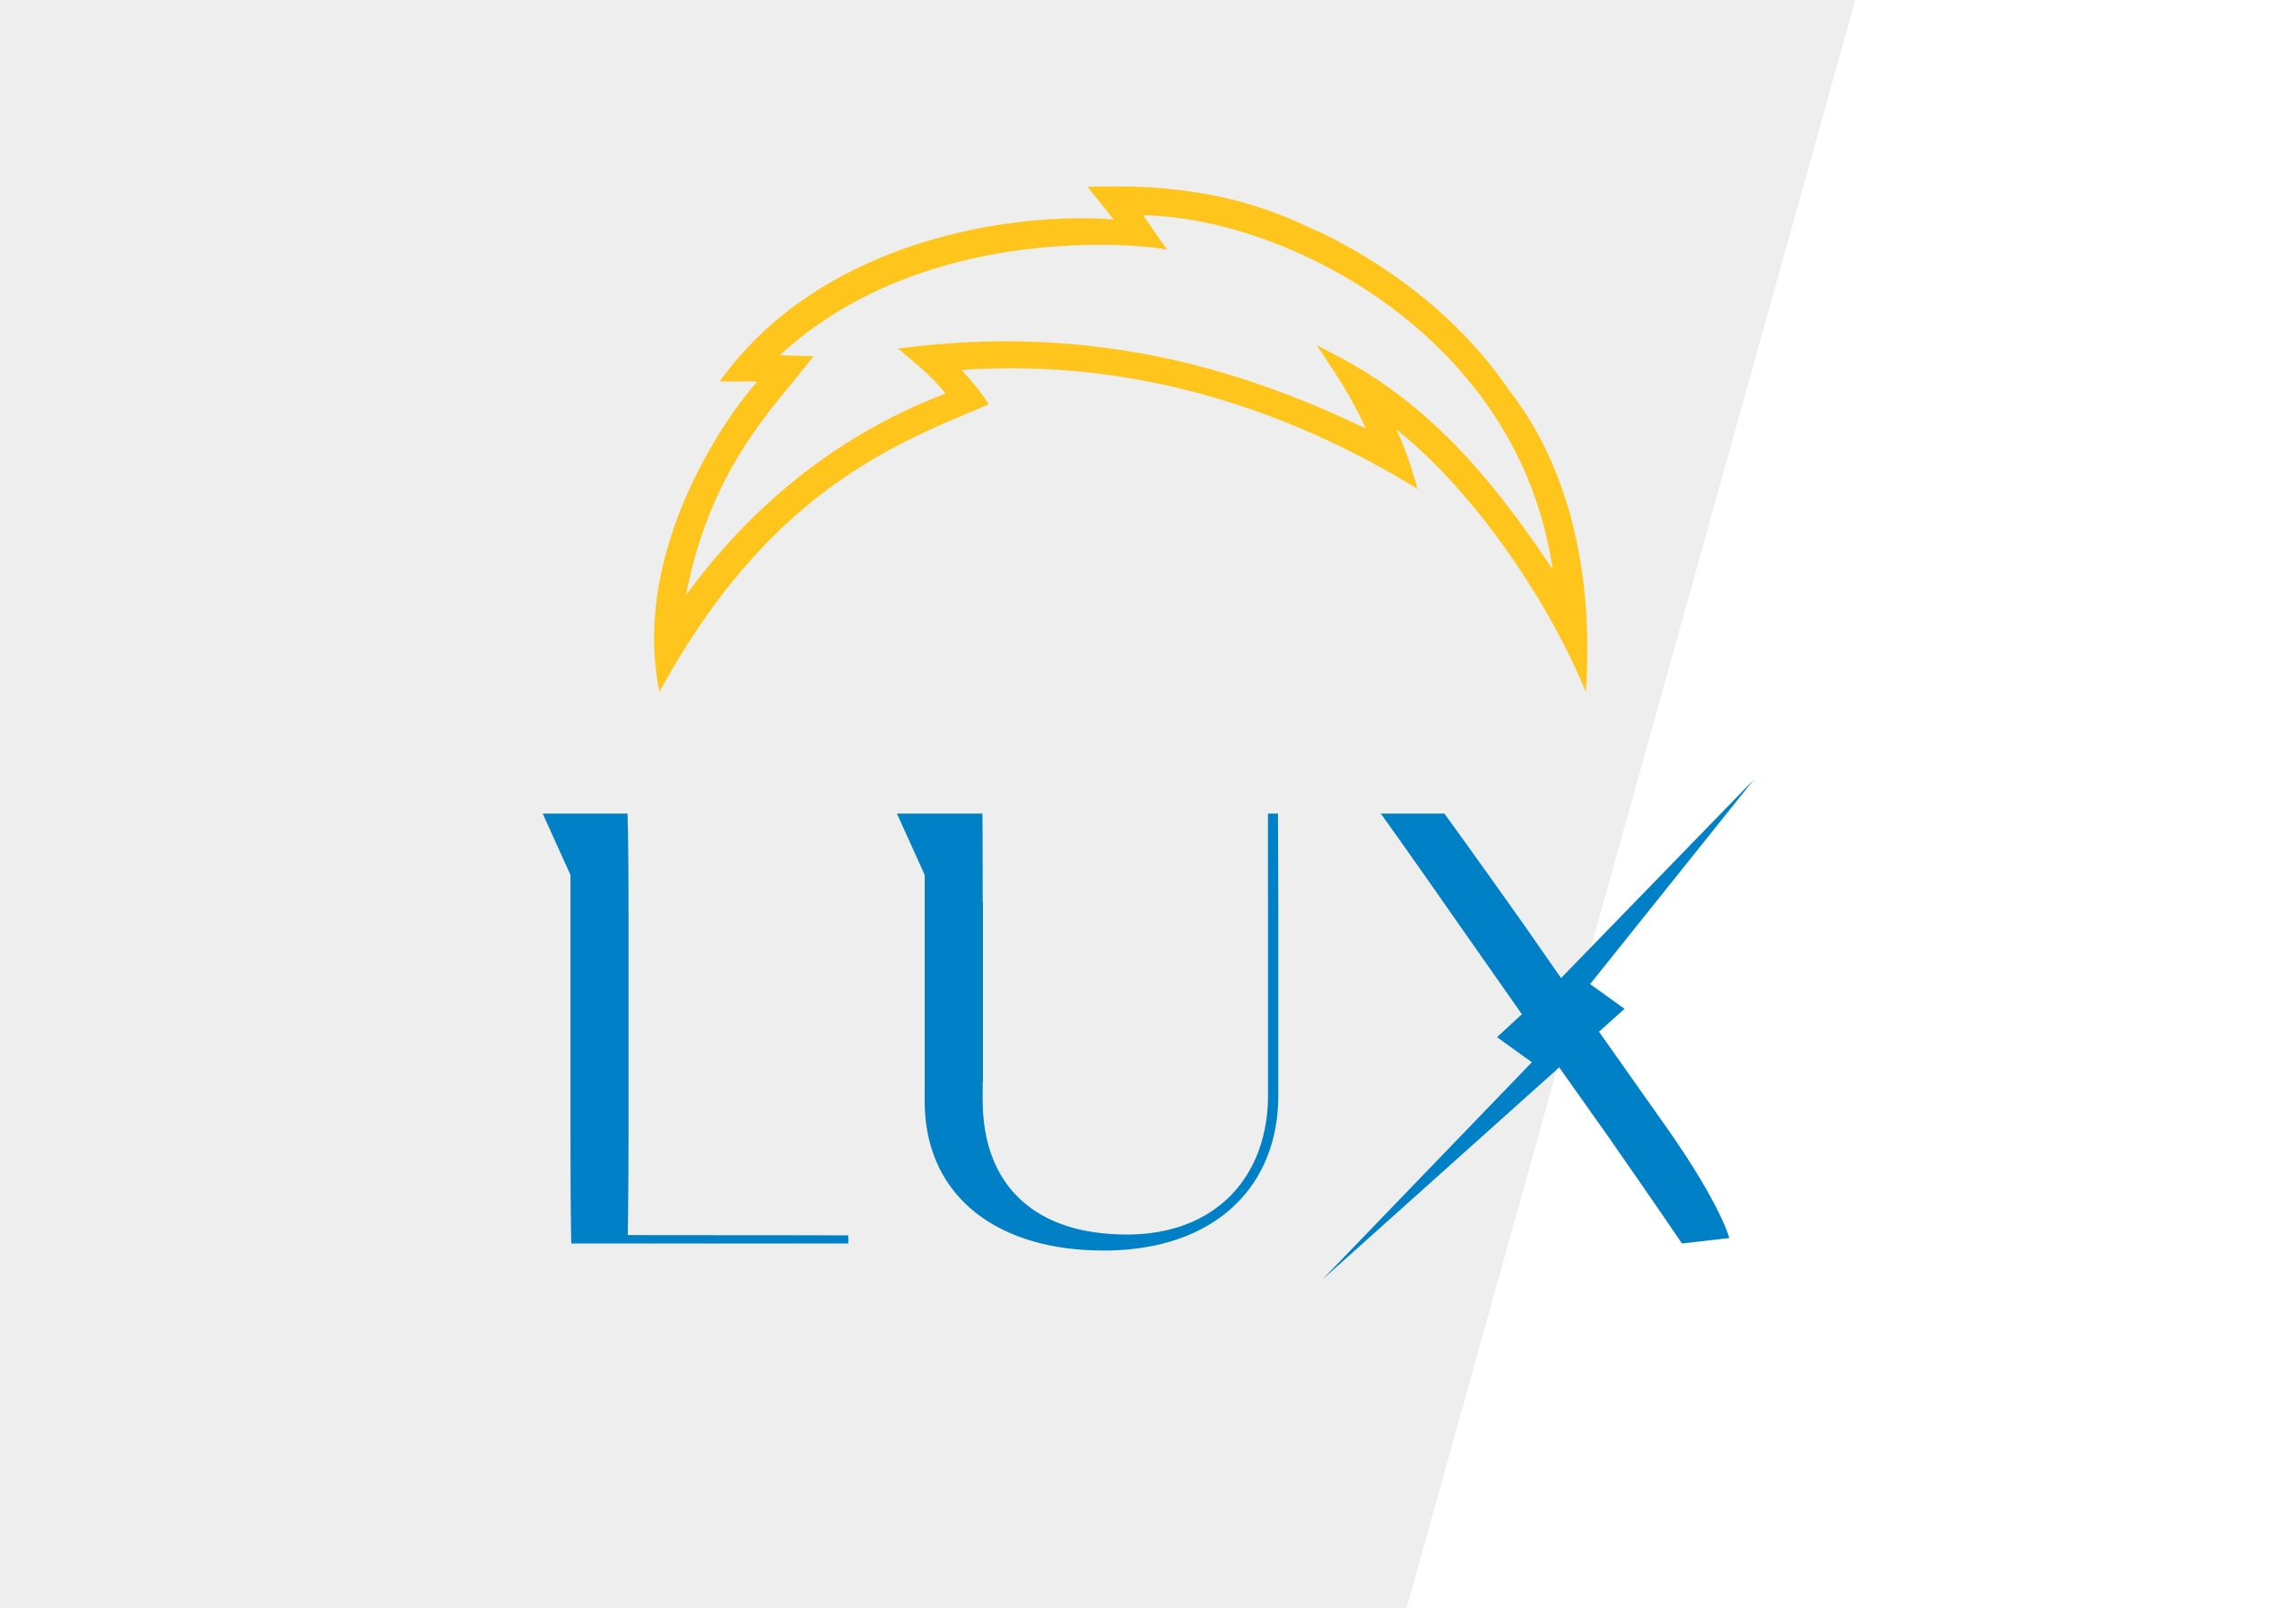 CHARGERS LUX - SUITE MEMBERSHIPS